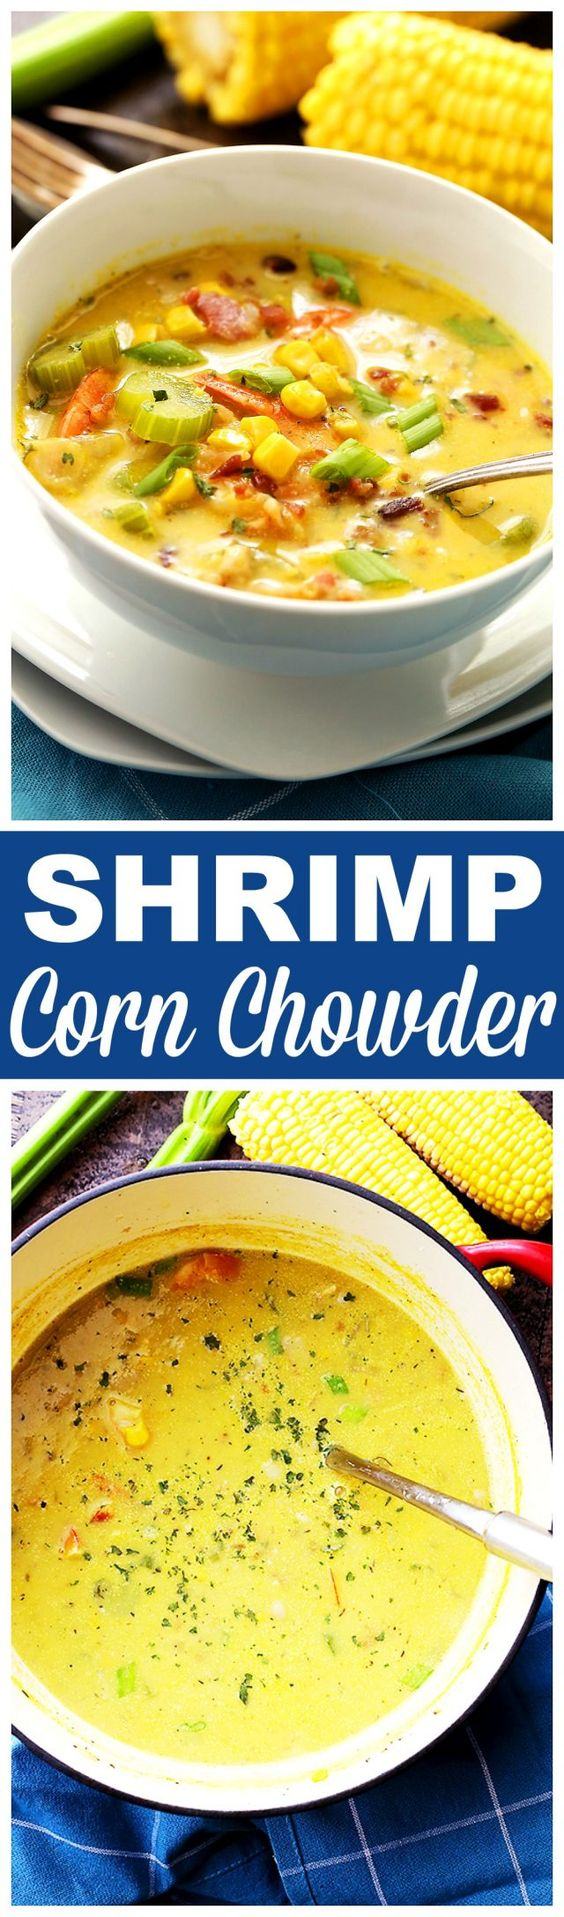 Shrimp Corn Chowder | Recipe | Sweet corn, Sweet and ...